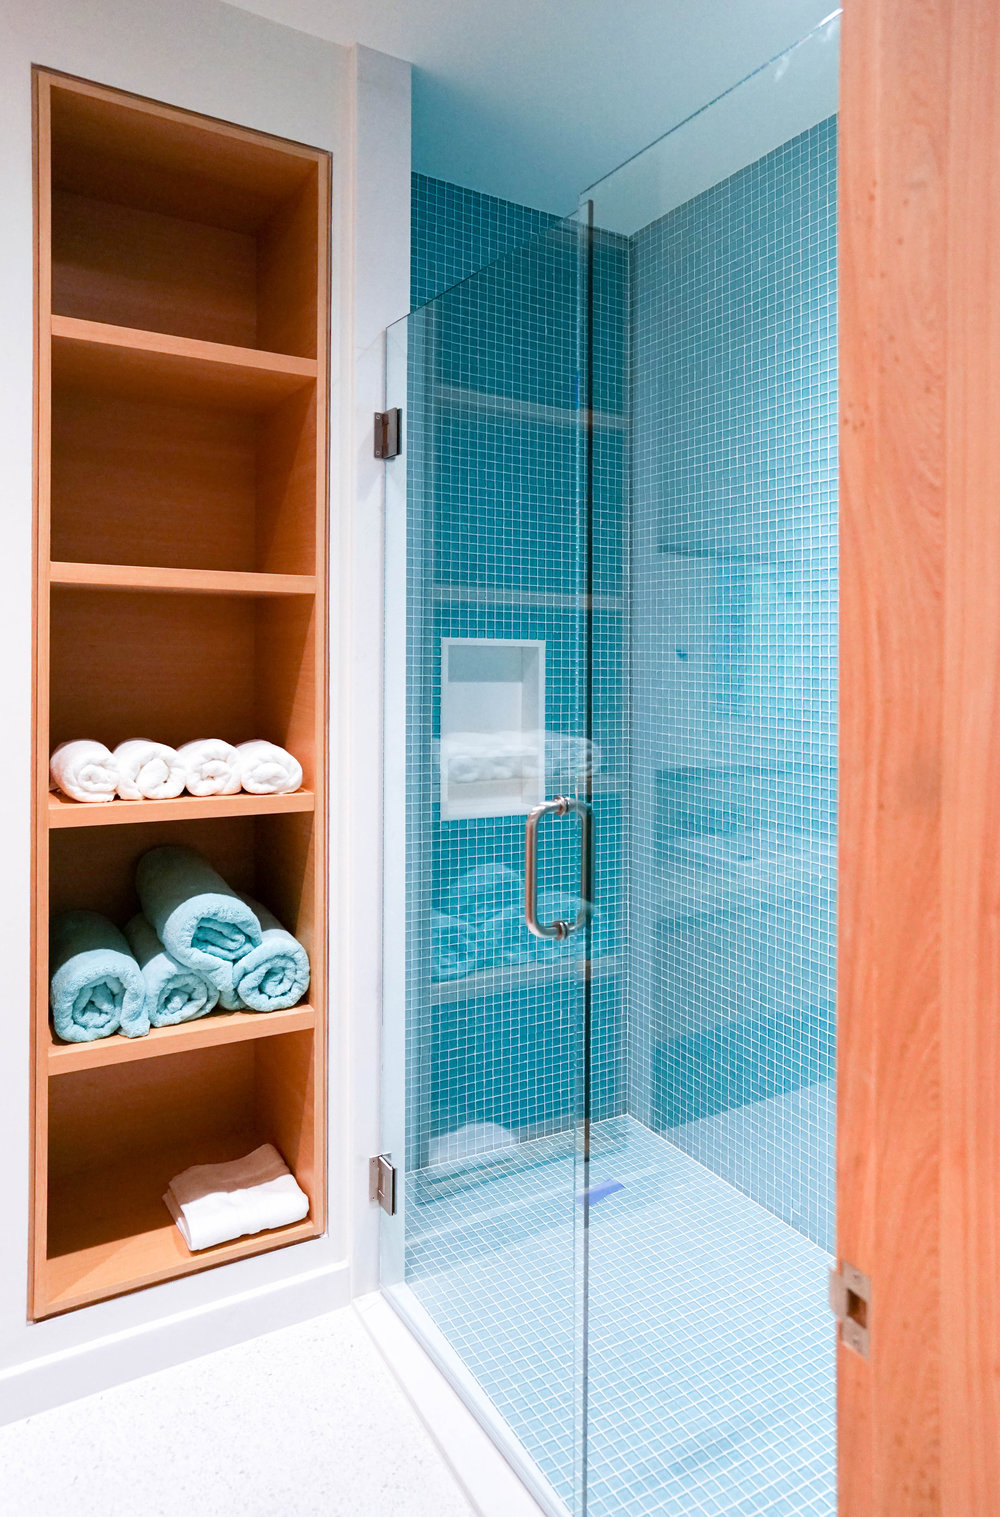 Aqua tile shower designed by NewStudio Architecture